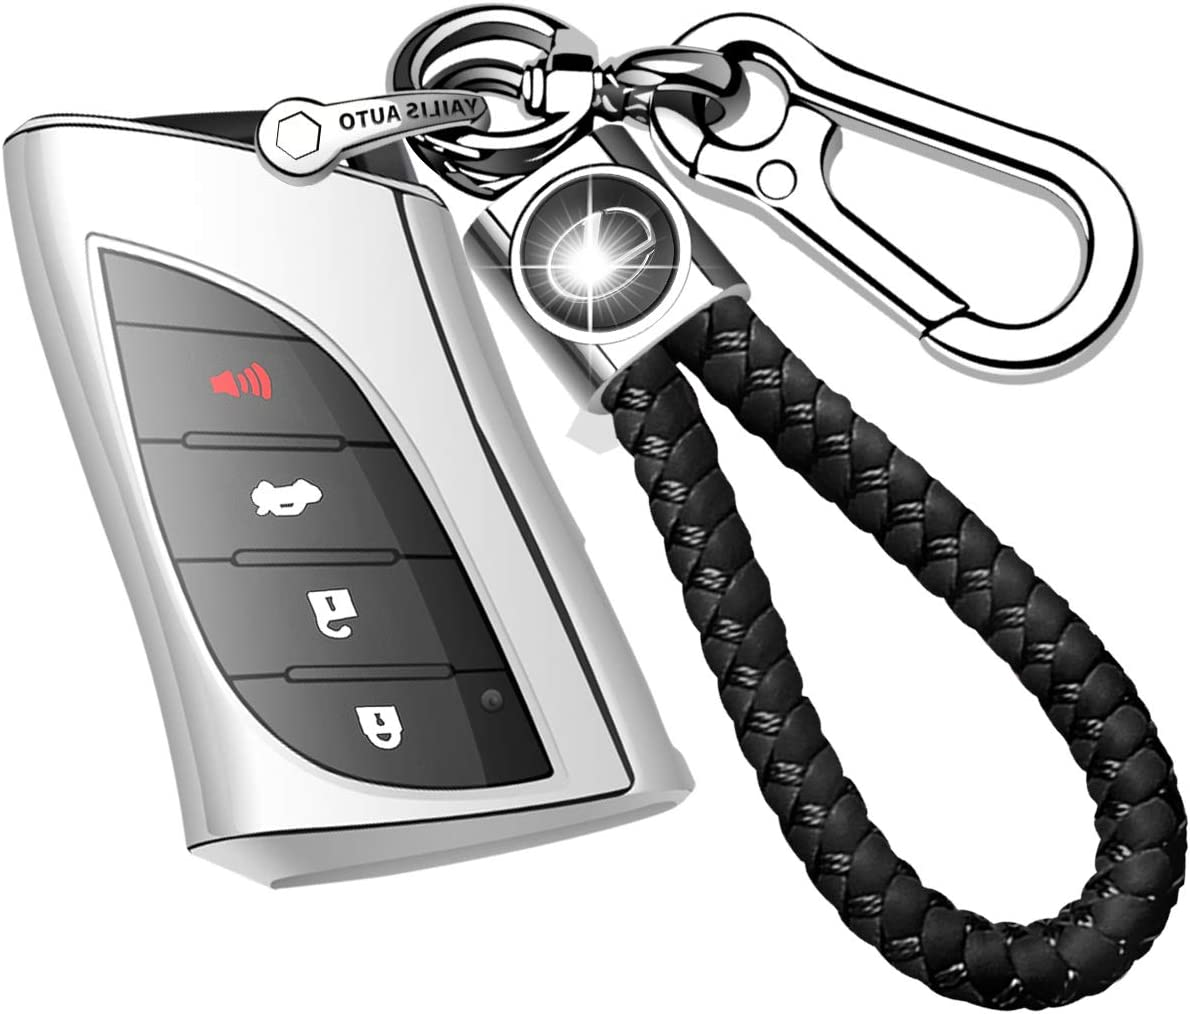 2021 autumn and winter new Autophone for Lexus Key fob Cover with 360 Deg Soft Denver Mall Keychain TPU